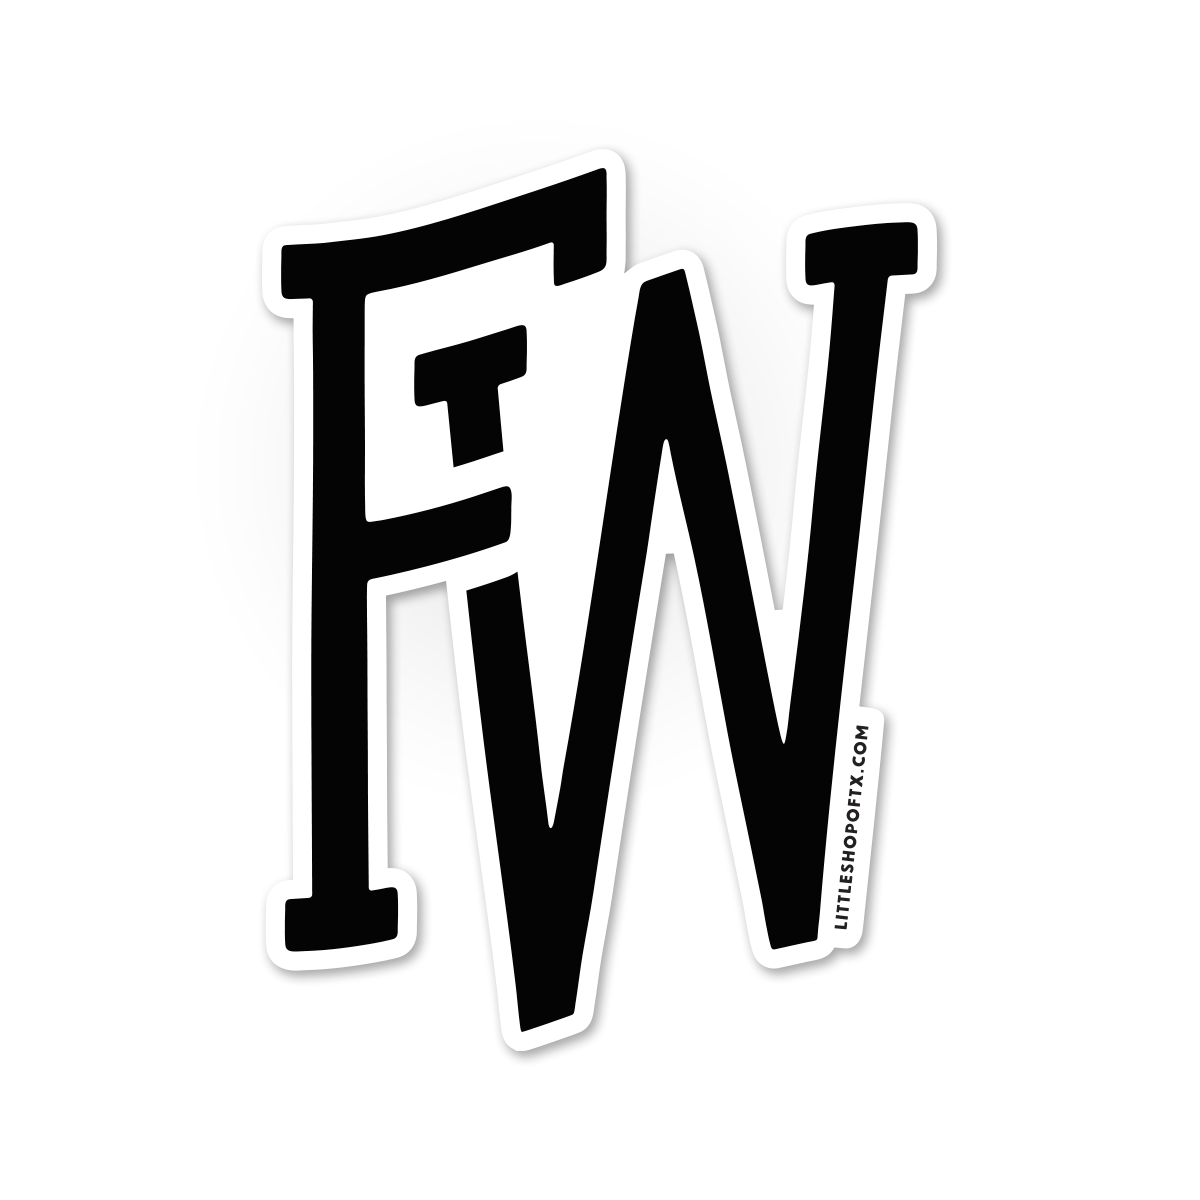 Image of FW Sticker